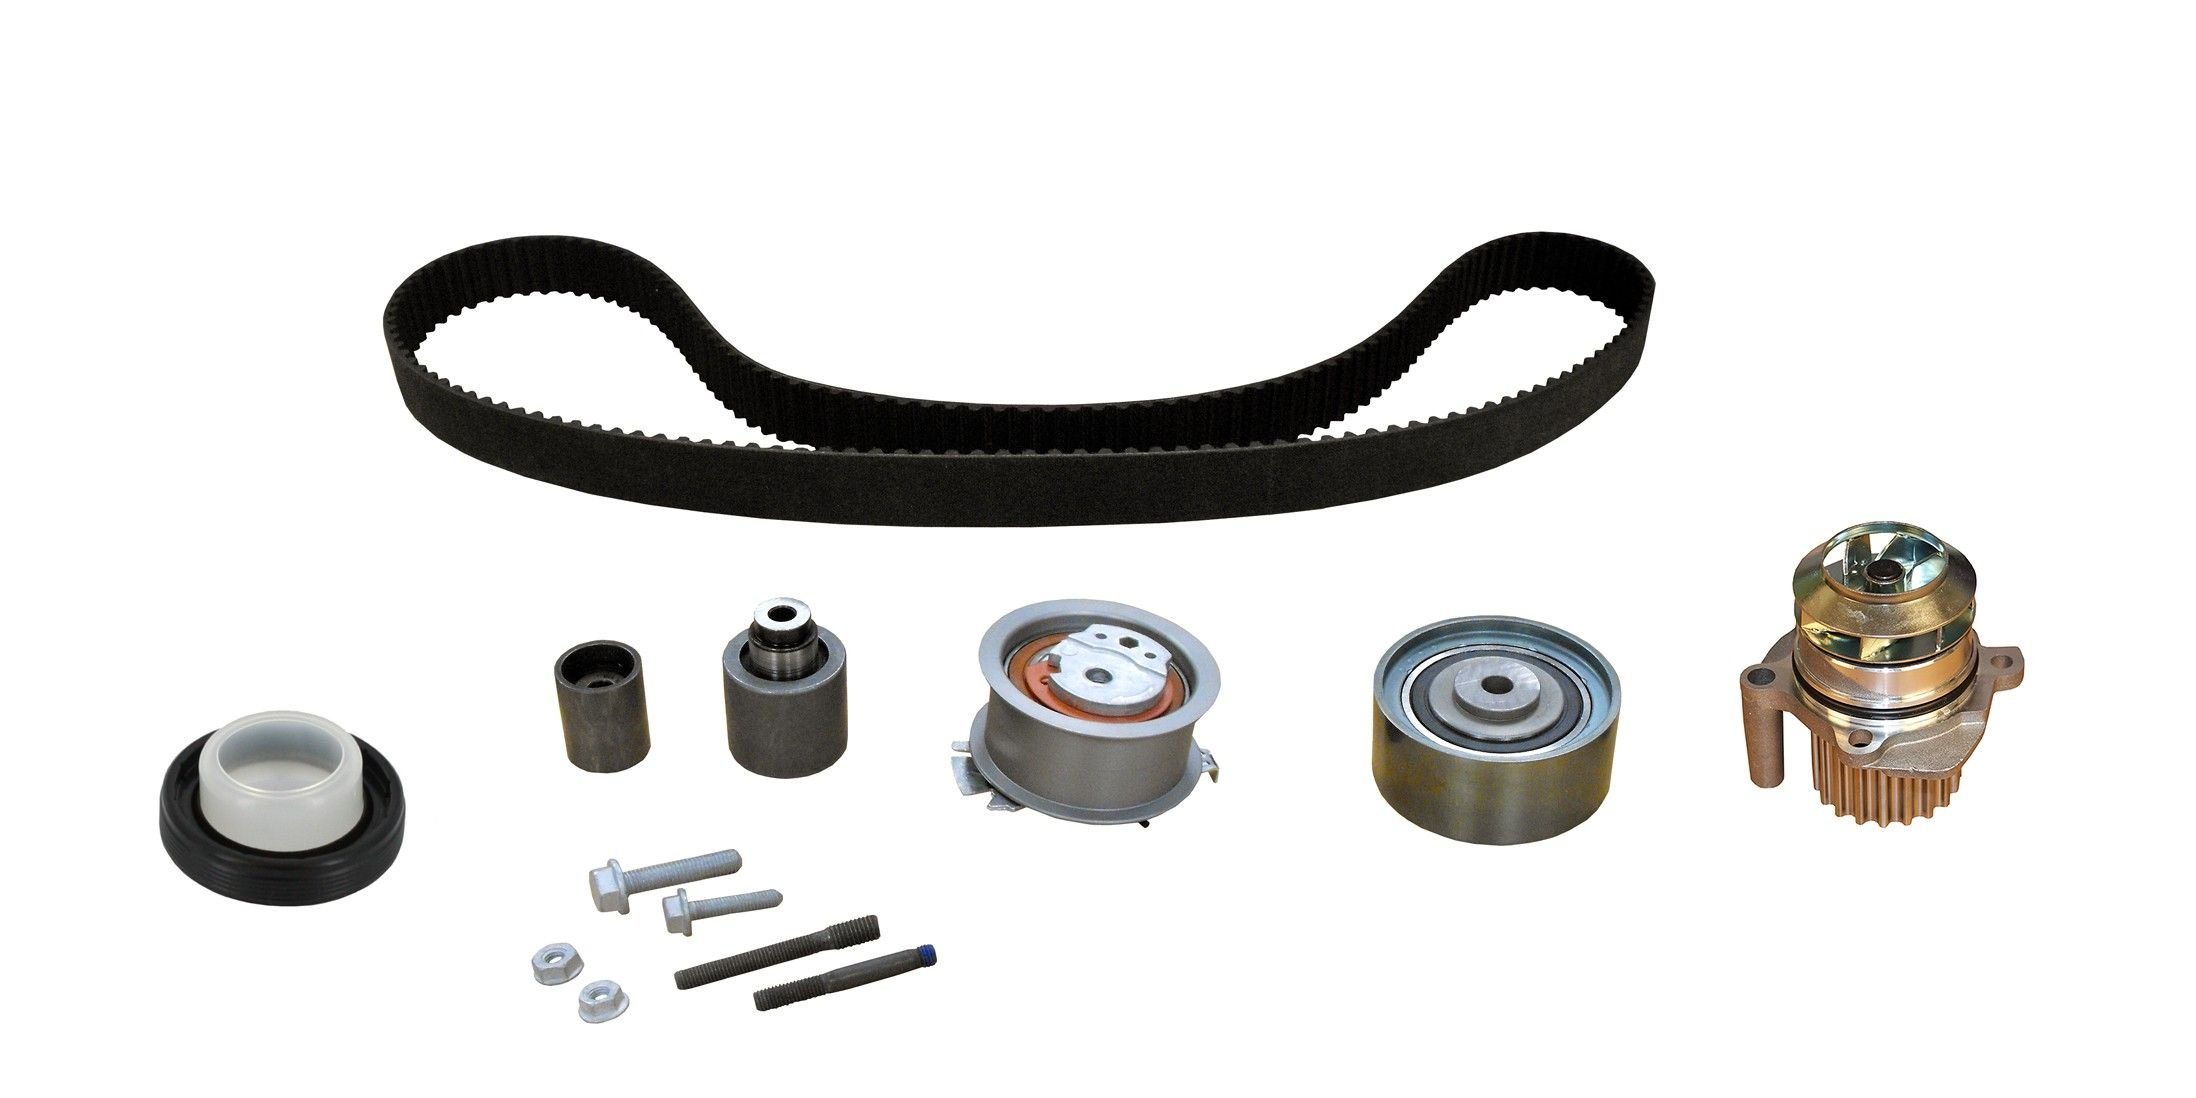 Volkswagen Golf Engine Timing Belt Kit With Water Pump Replacement Dayco Idler 2010 4 Cyl 20l Crp Pp342lk1 Mi Pro Series Plus Contitech From 9 28 09 W Metal Impeller